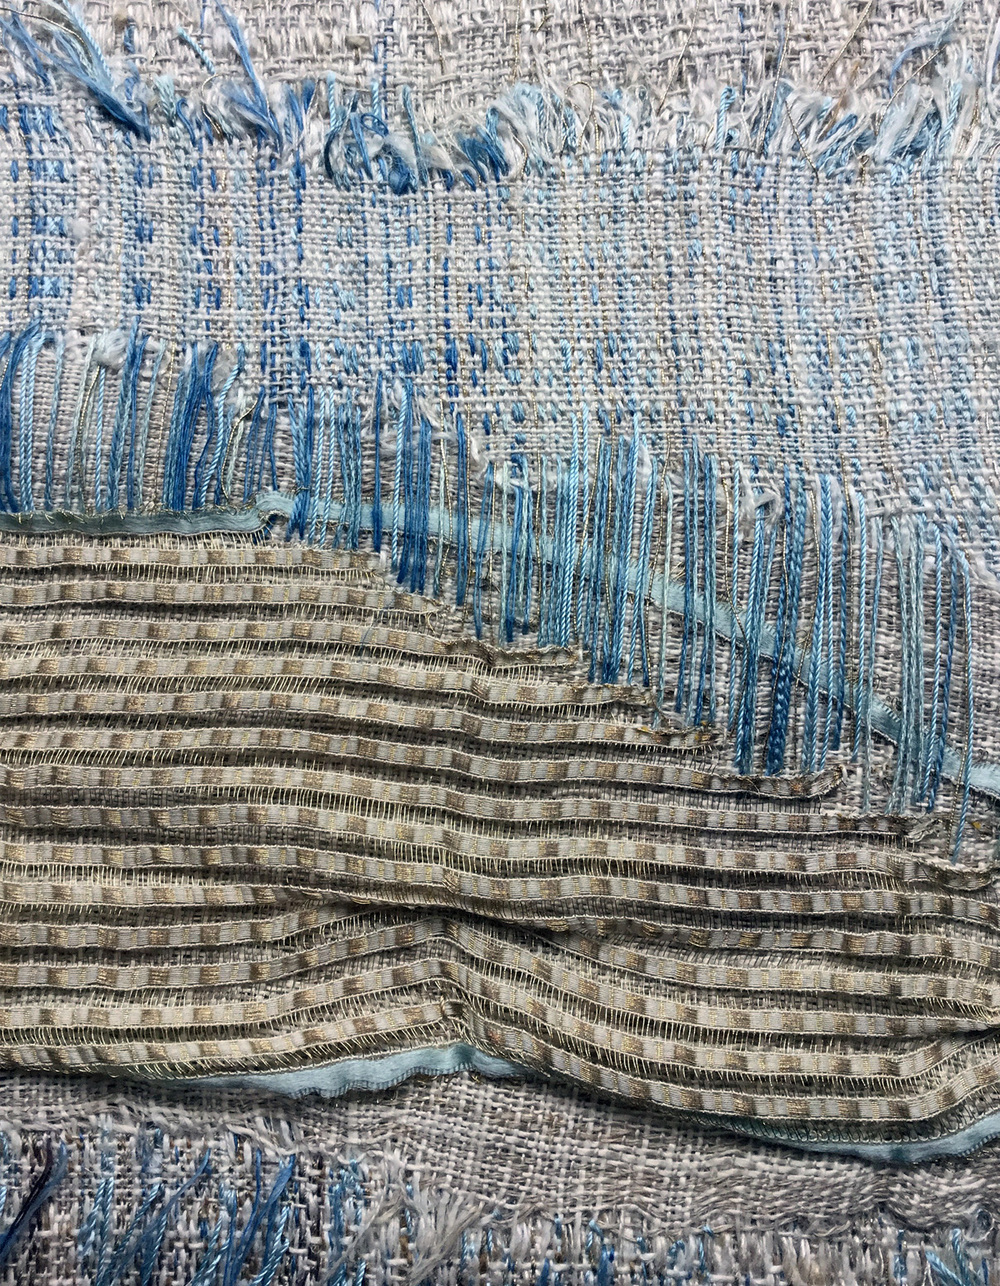 Paula Stebbins Becker  Dreaming of the Sea (detail), 2015  Linen, silk, cotton, metallic threads, vintage silk ribbon with framed vintage photograph  8.5 x 17 inches   $850